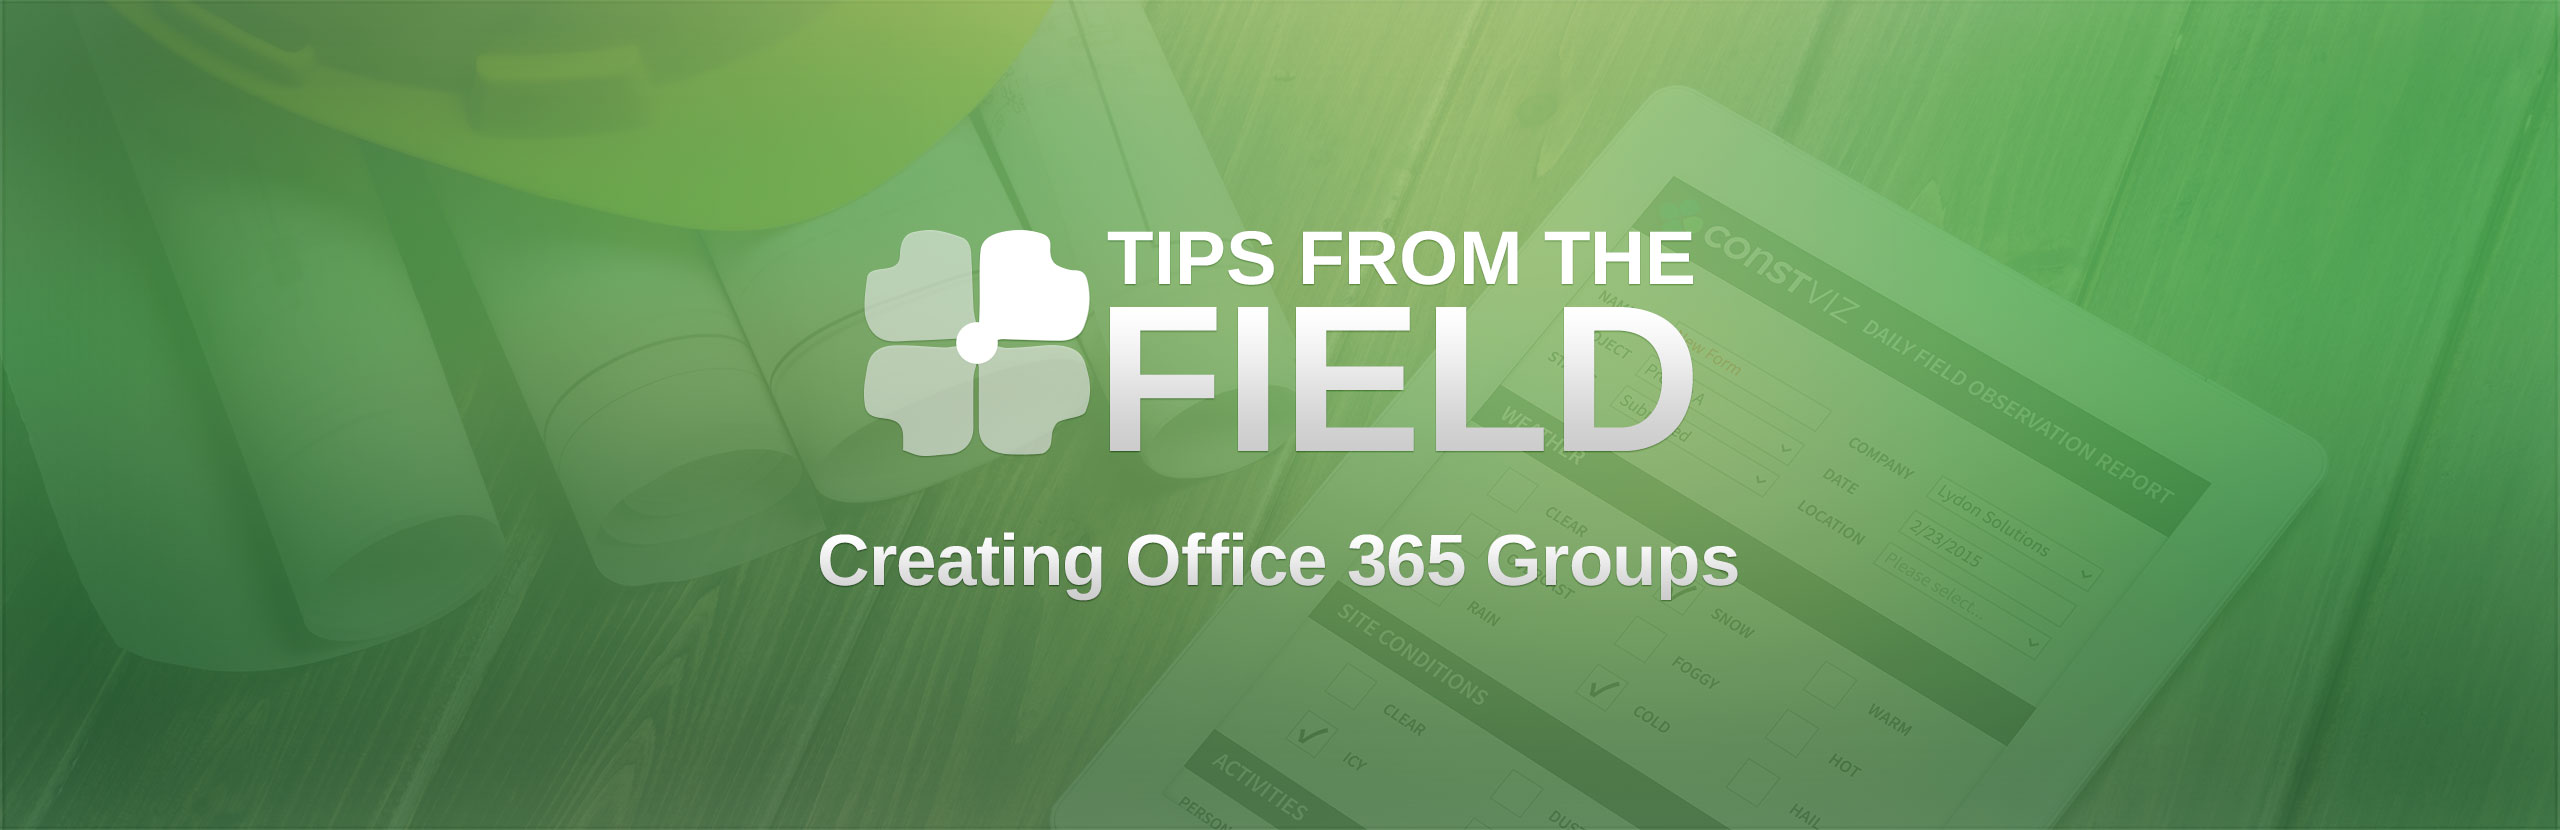 tips-from-the-field-creating-office-365-groups